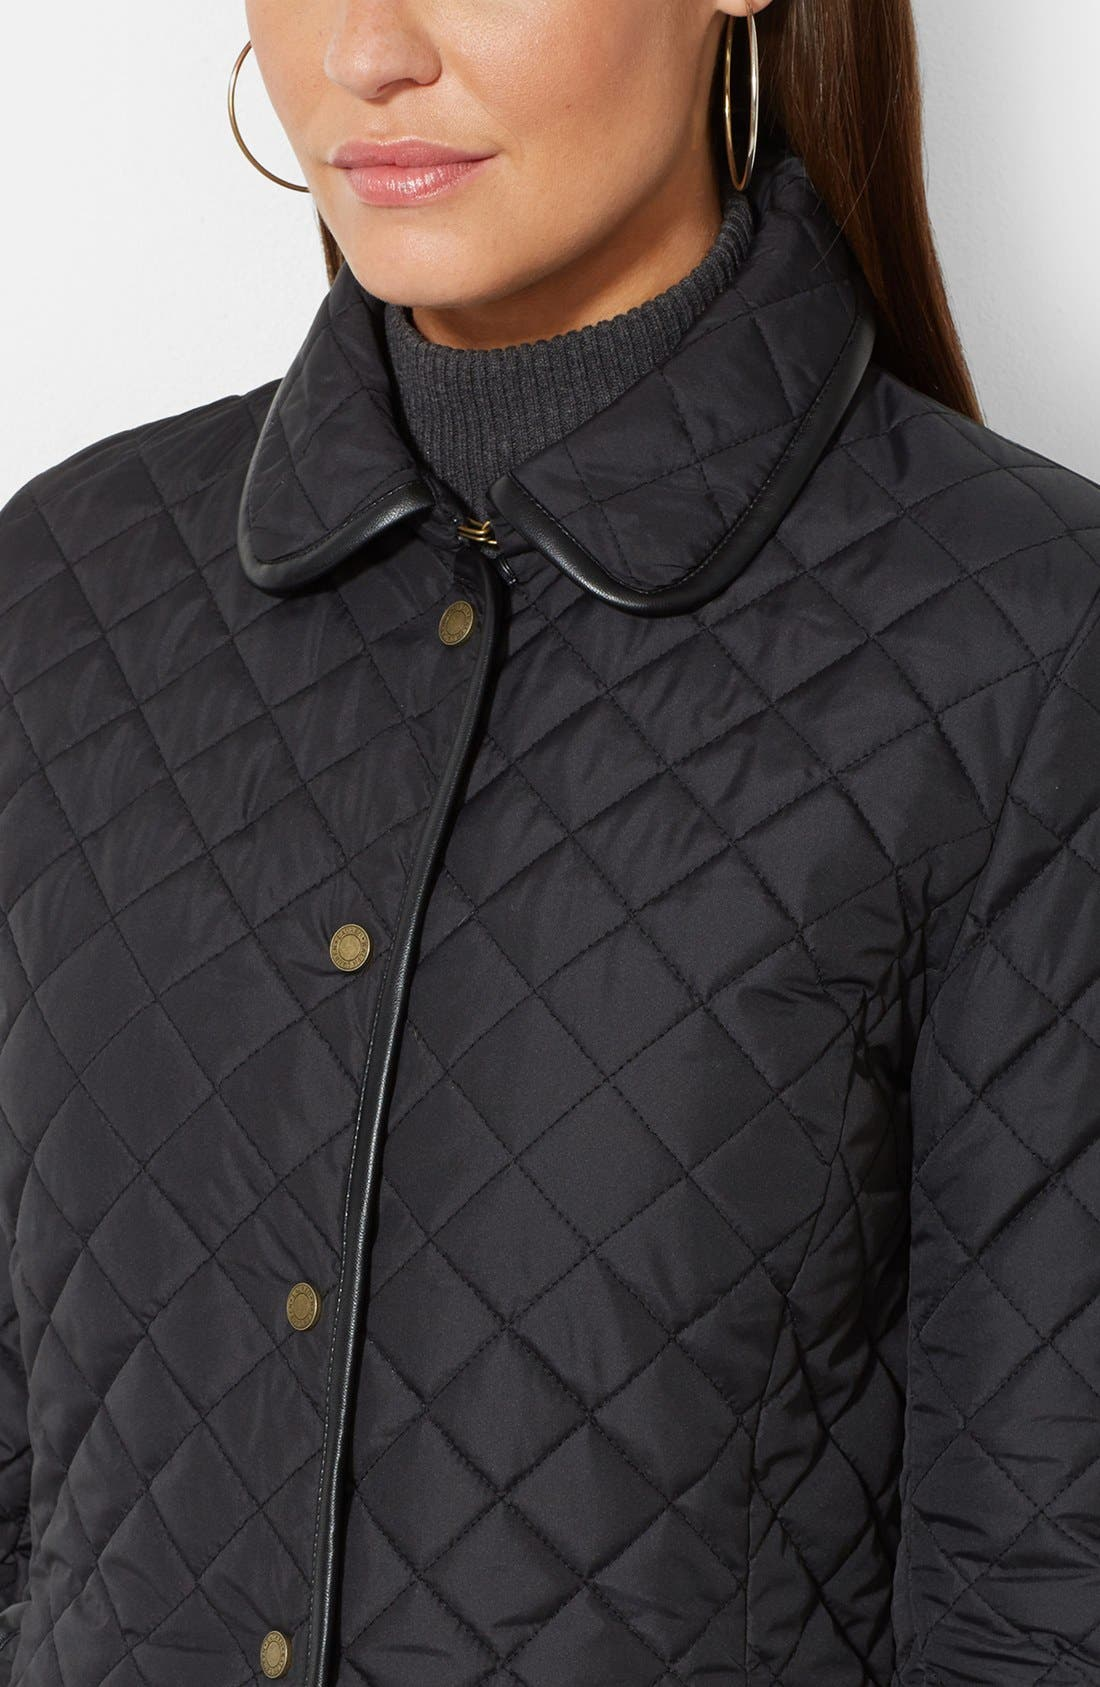 Faux Leather Trim Quilted Jacket,                             Alternate thumbnail 3, color,                             001